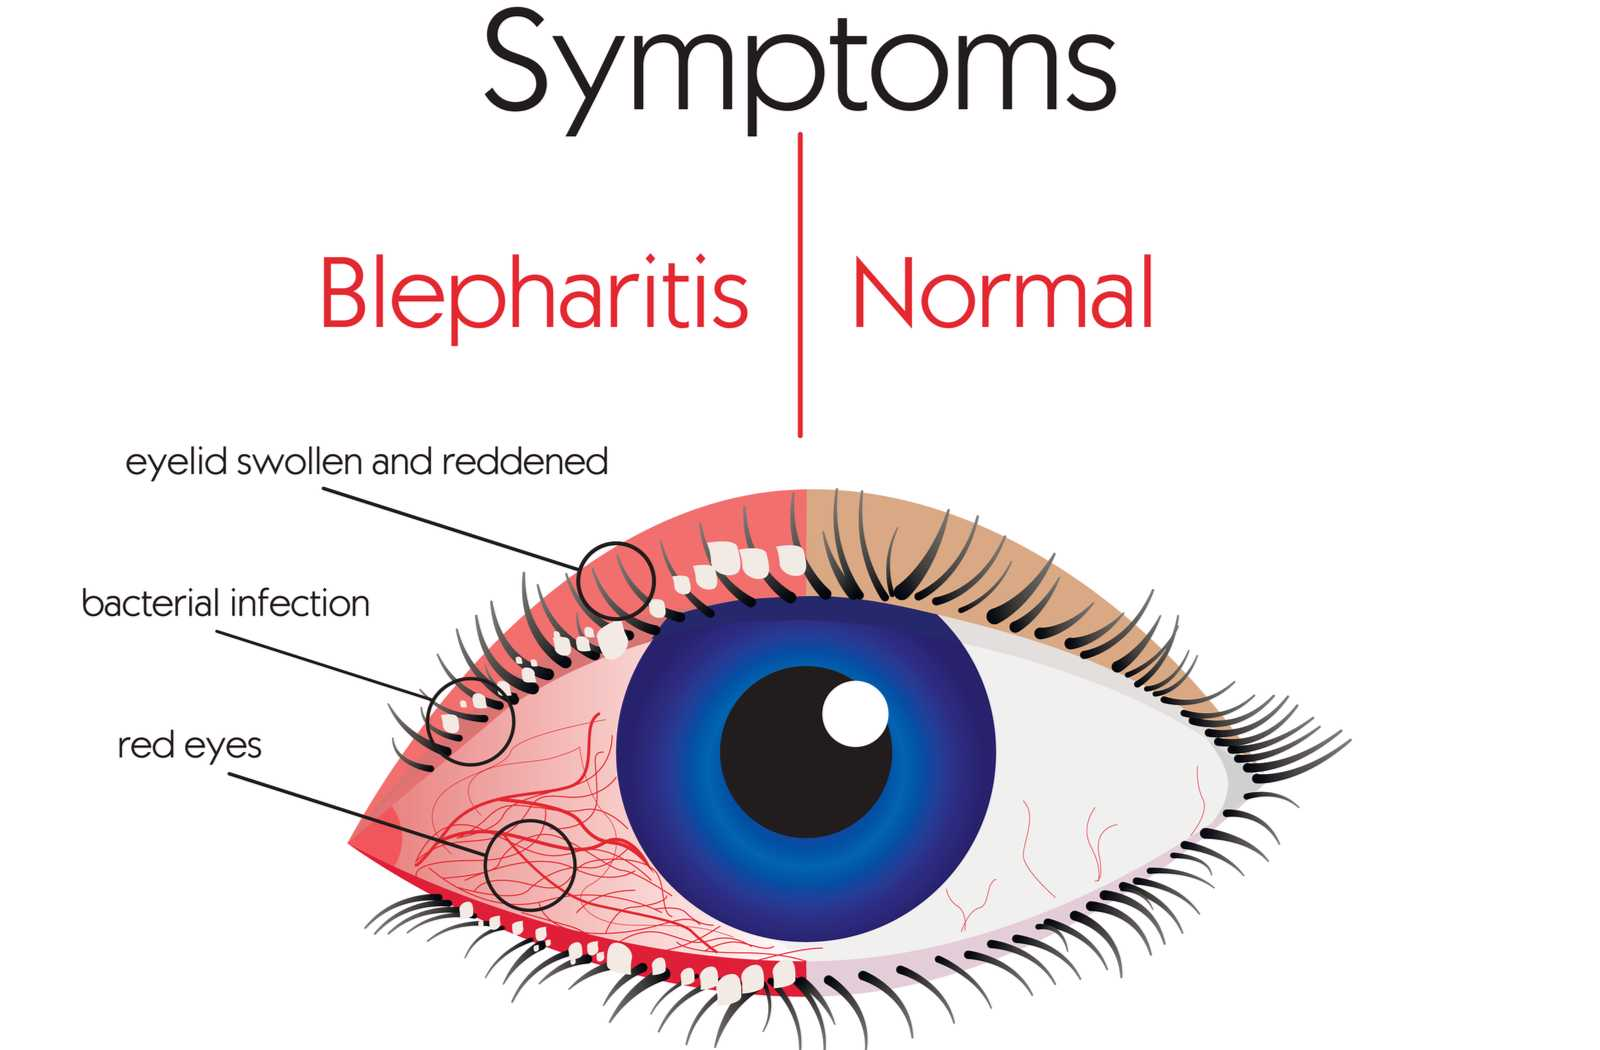 Diagram comparing the symptoms of blepharitis to a normal, healthy eye